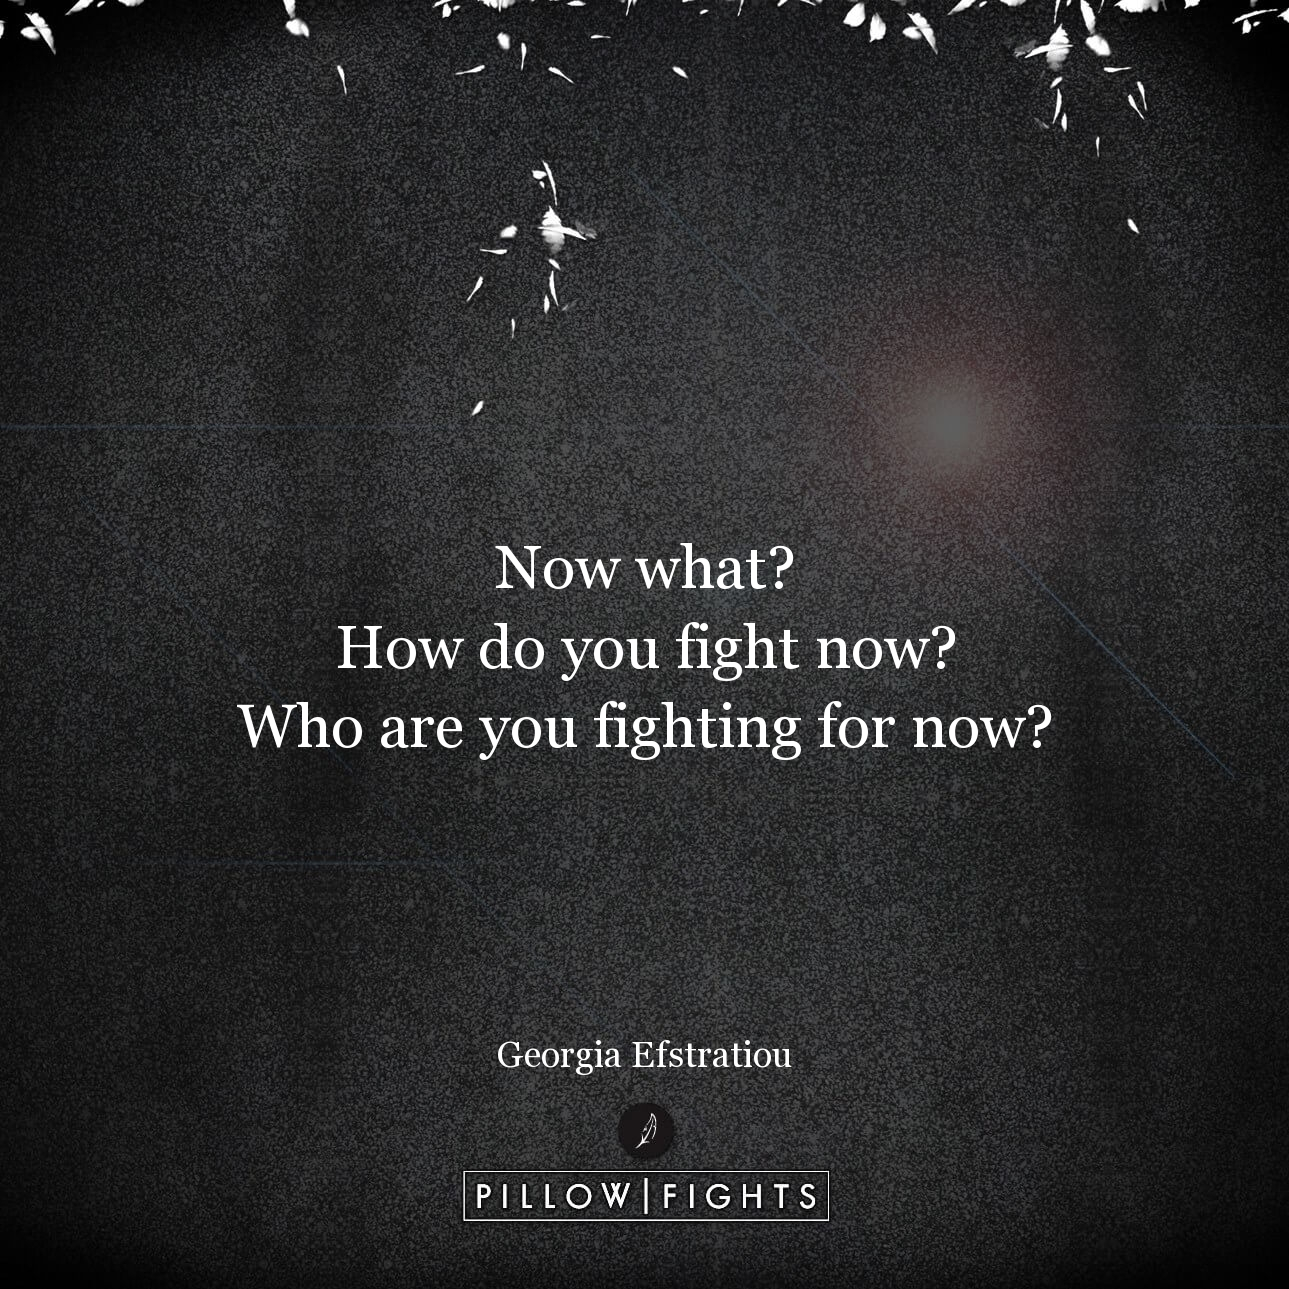 29152-who-are-you-fighting-for-now